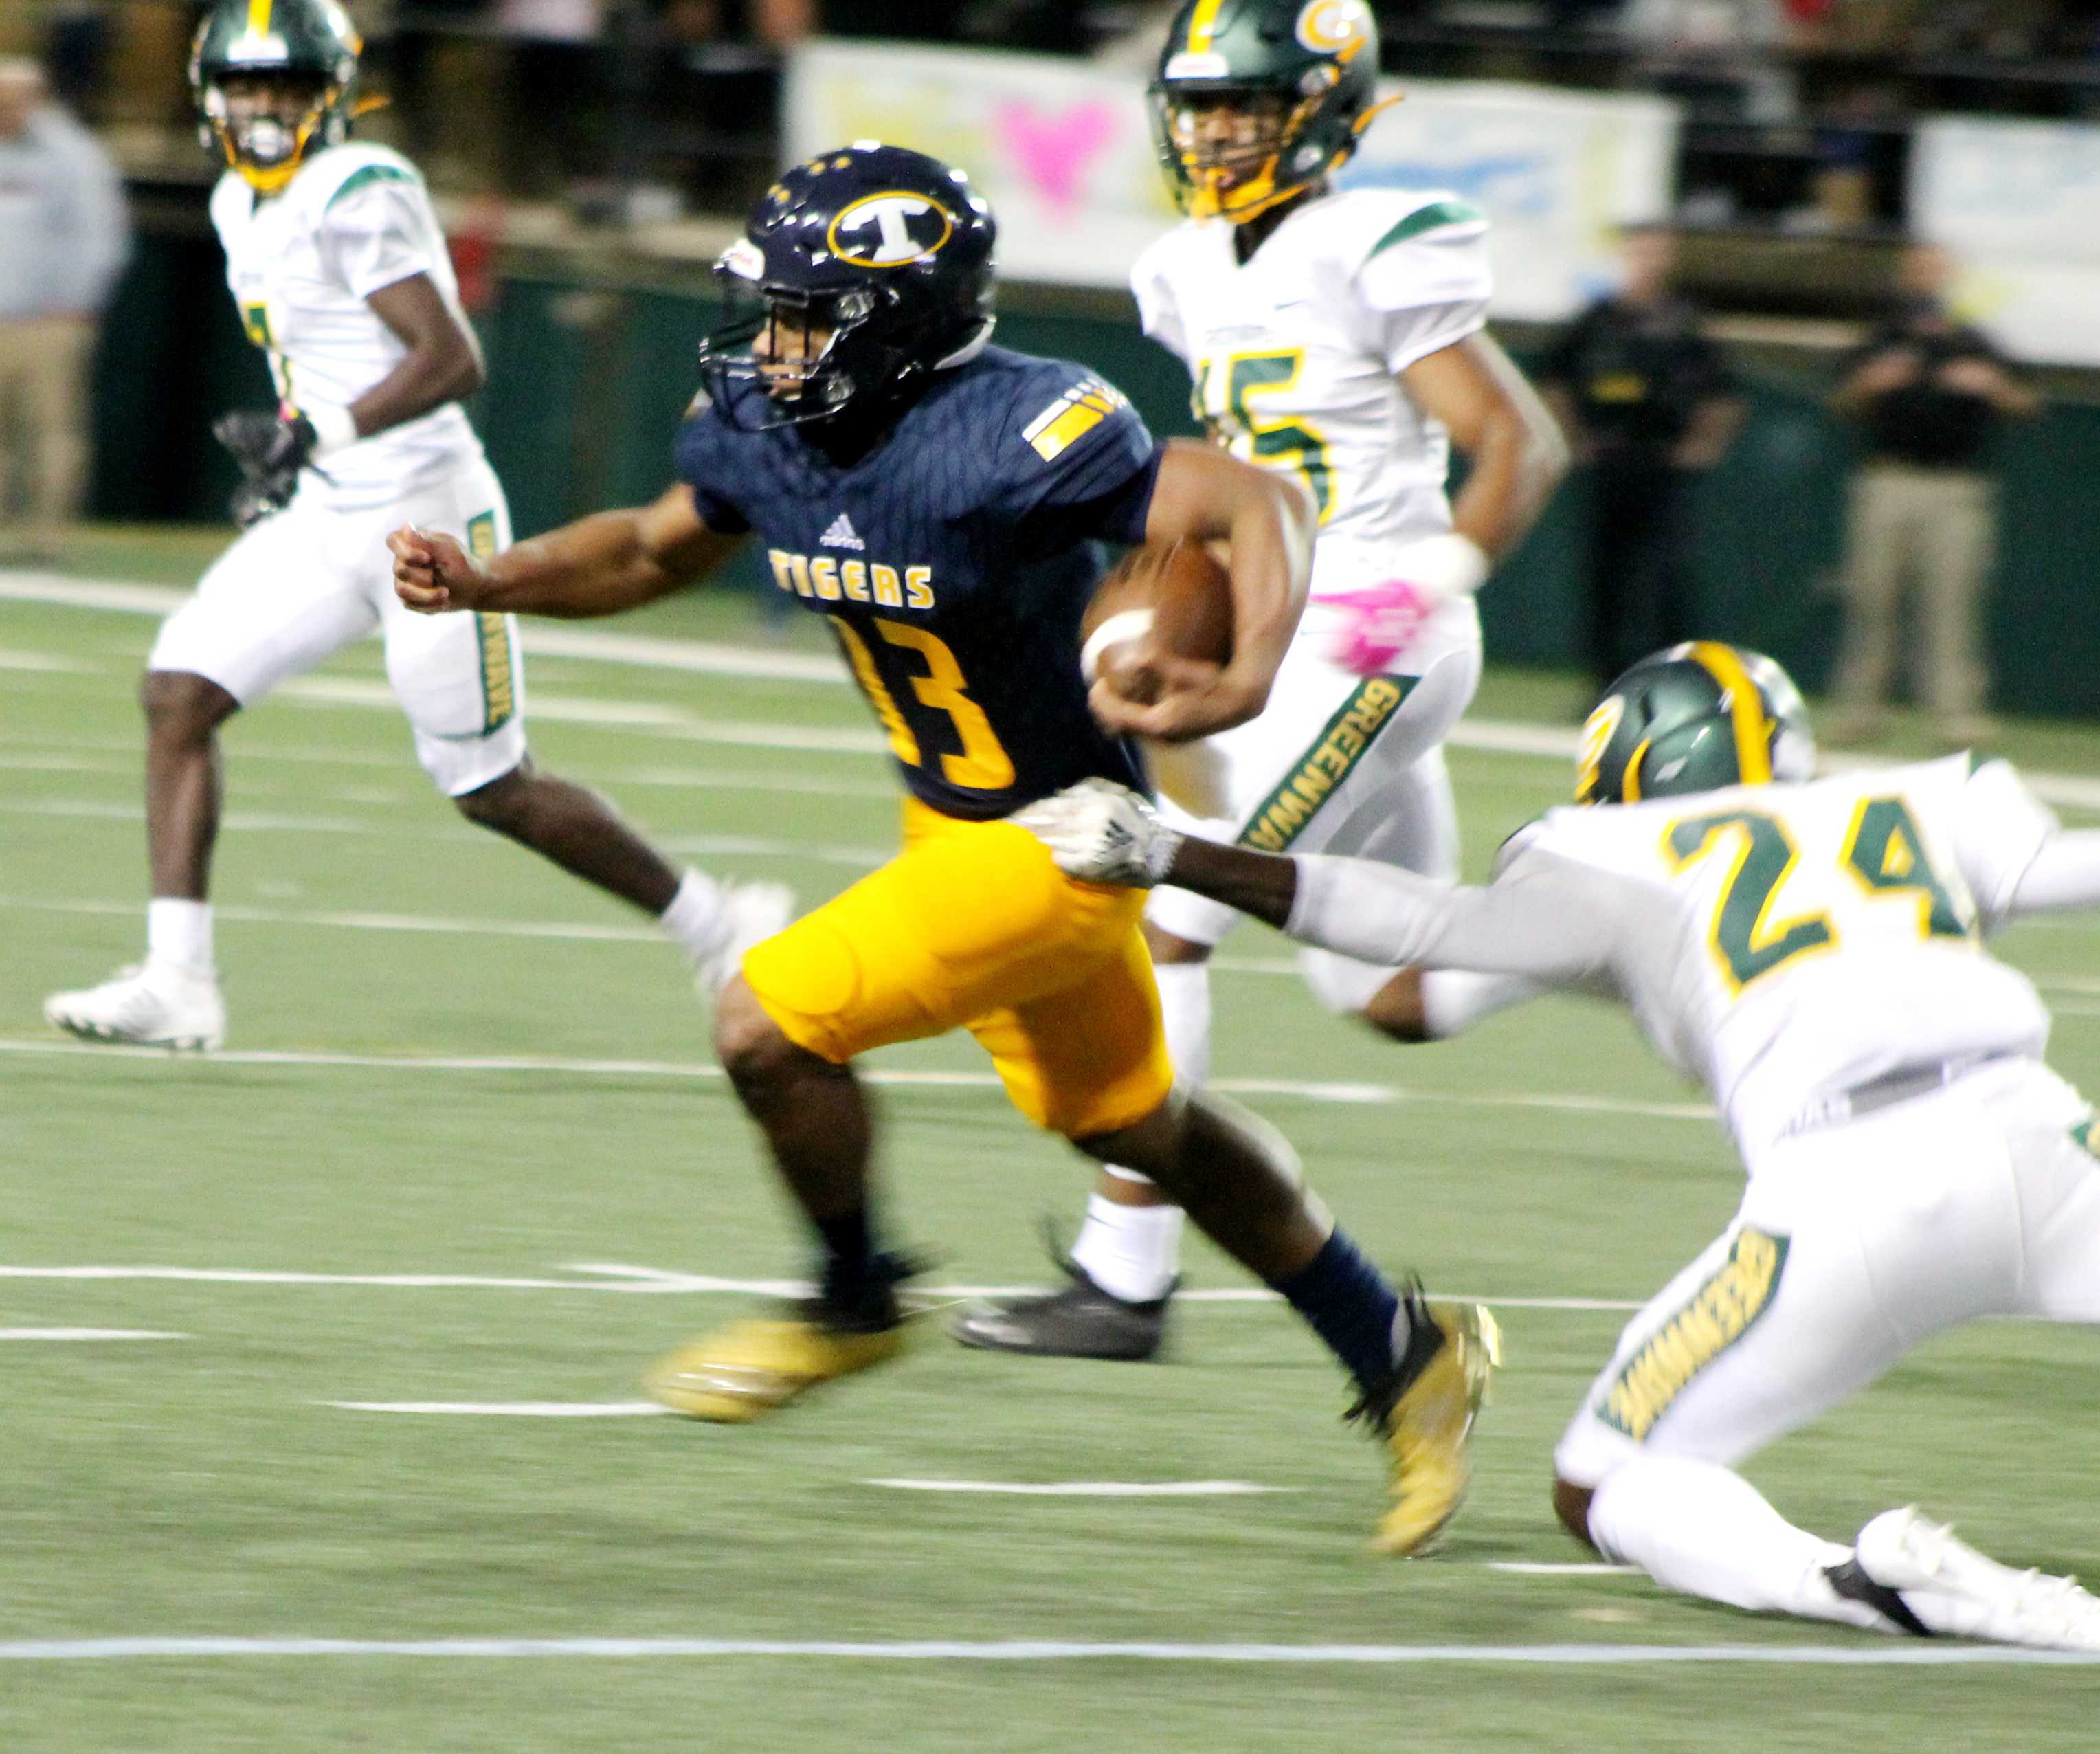 Taeo Todd Rambles for 192 Yards, Troup Dominates the Green Wave